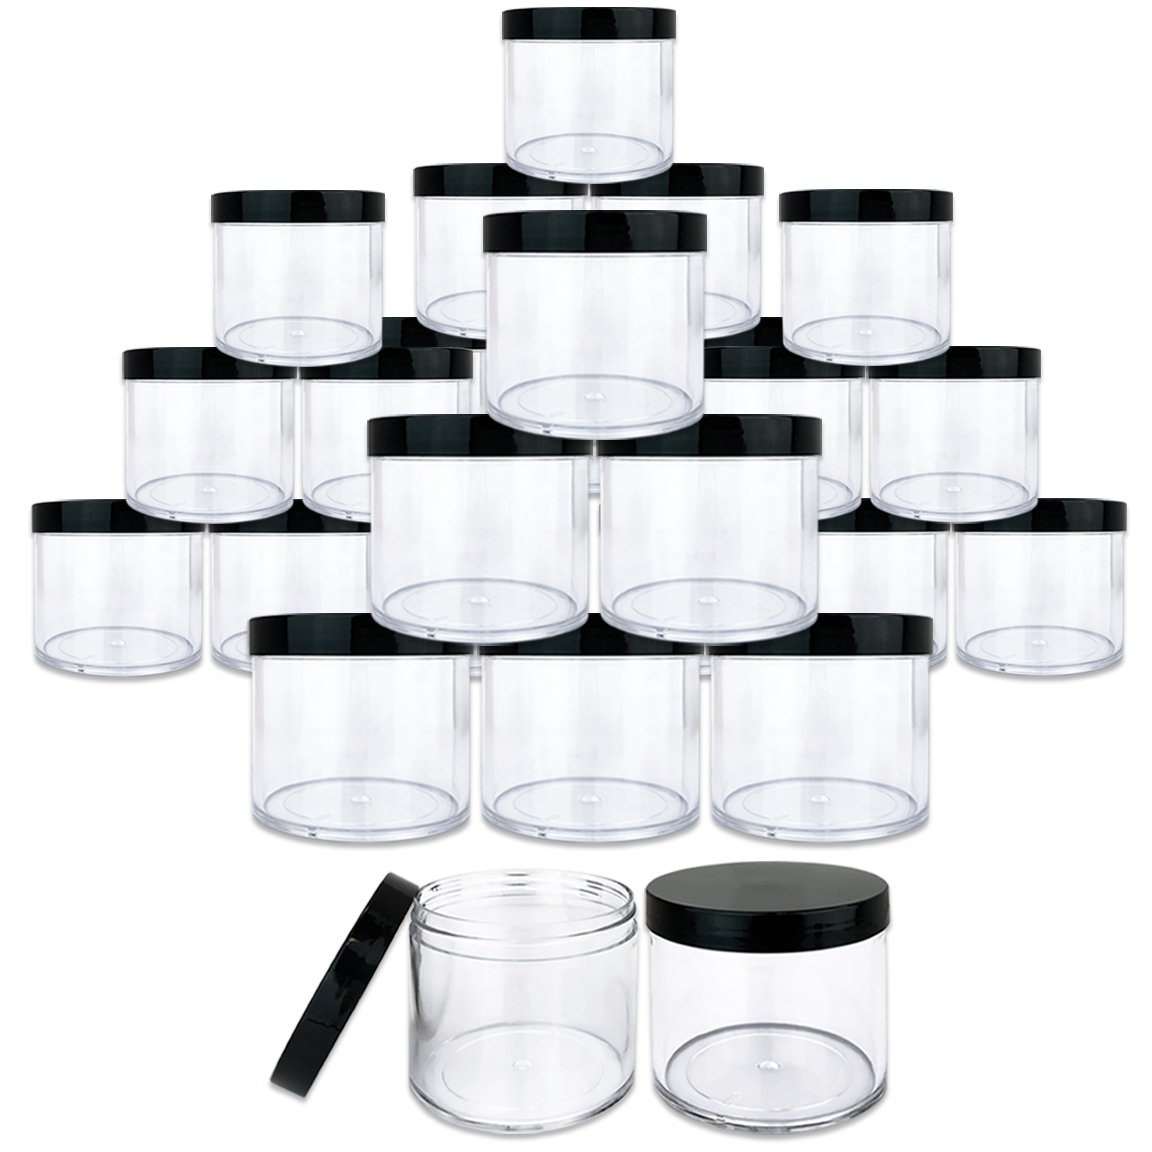 Beauticom 10 oz. (300g /300ML) (Quantity: 120 Packs) Thick Wall Round Leak Proof Clear Acrylic Jars with Black Lids for Beauty, Cream, Cosmetics, Salves, Scrubs